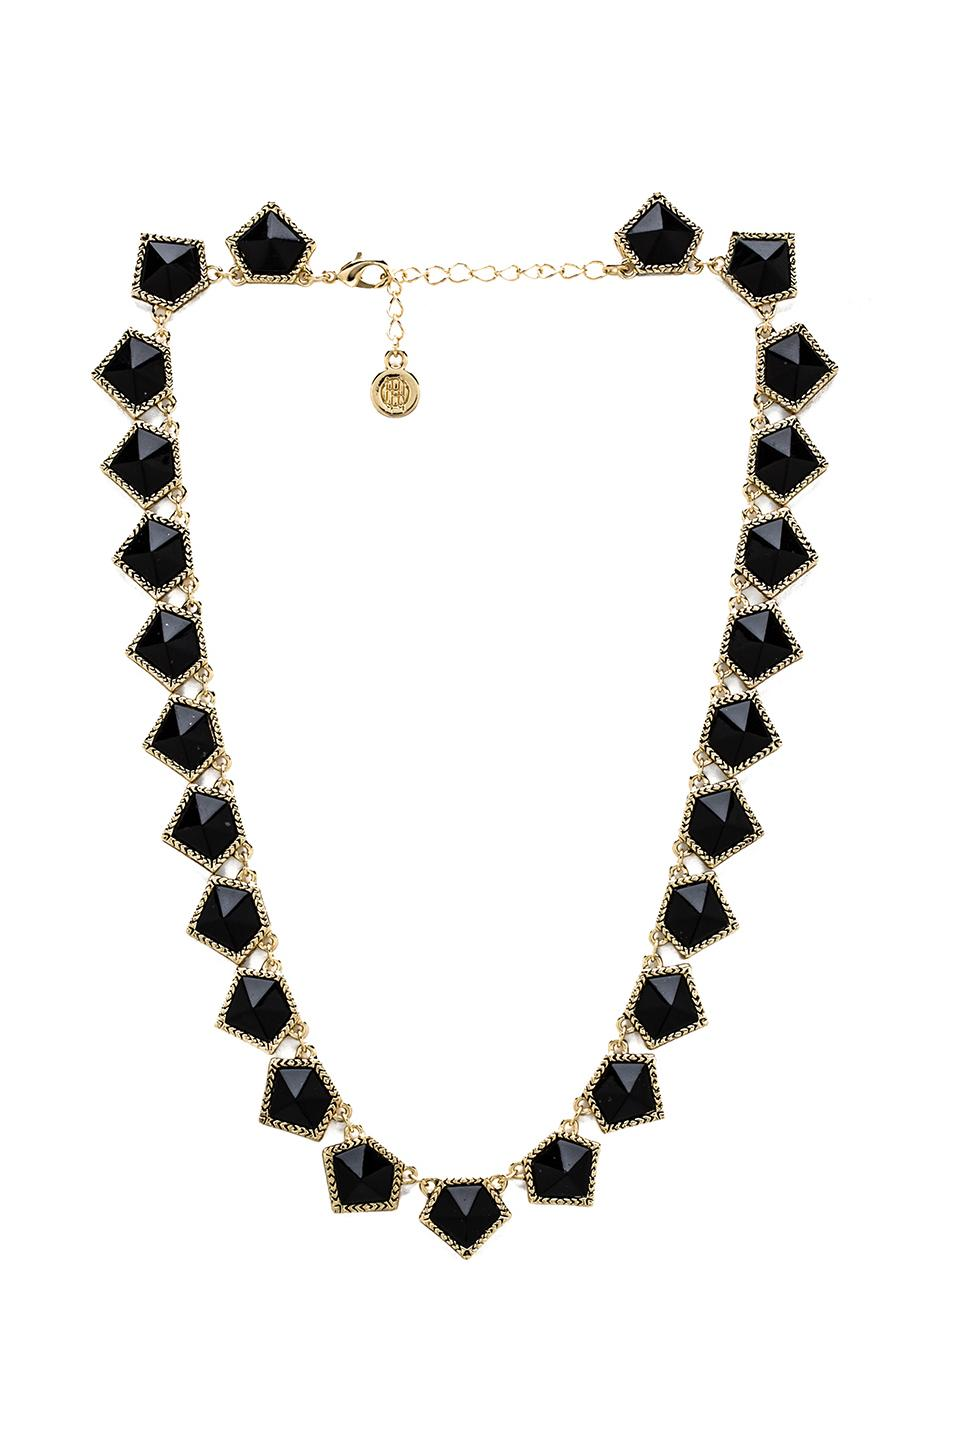 House of Harlow 1960 House of Harlow Jewels of Java Necklace in Gold/Black